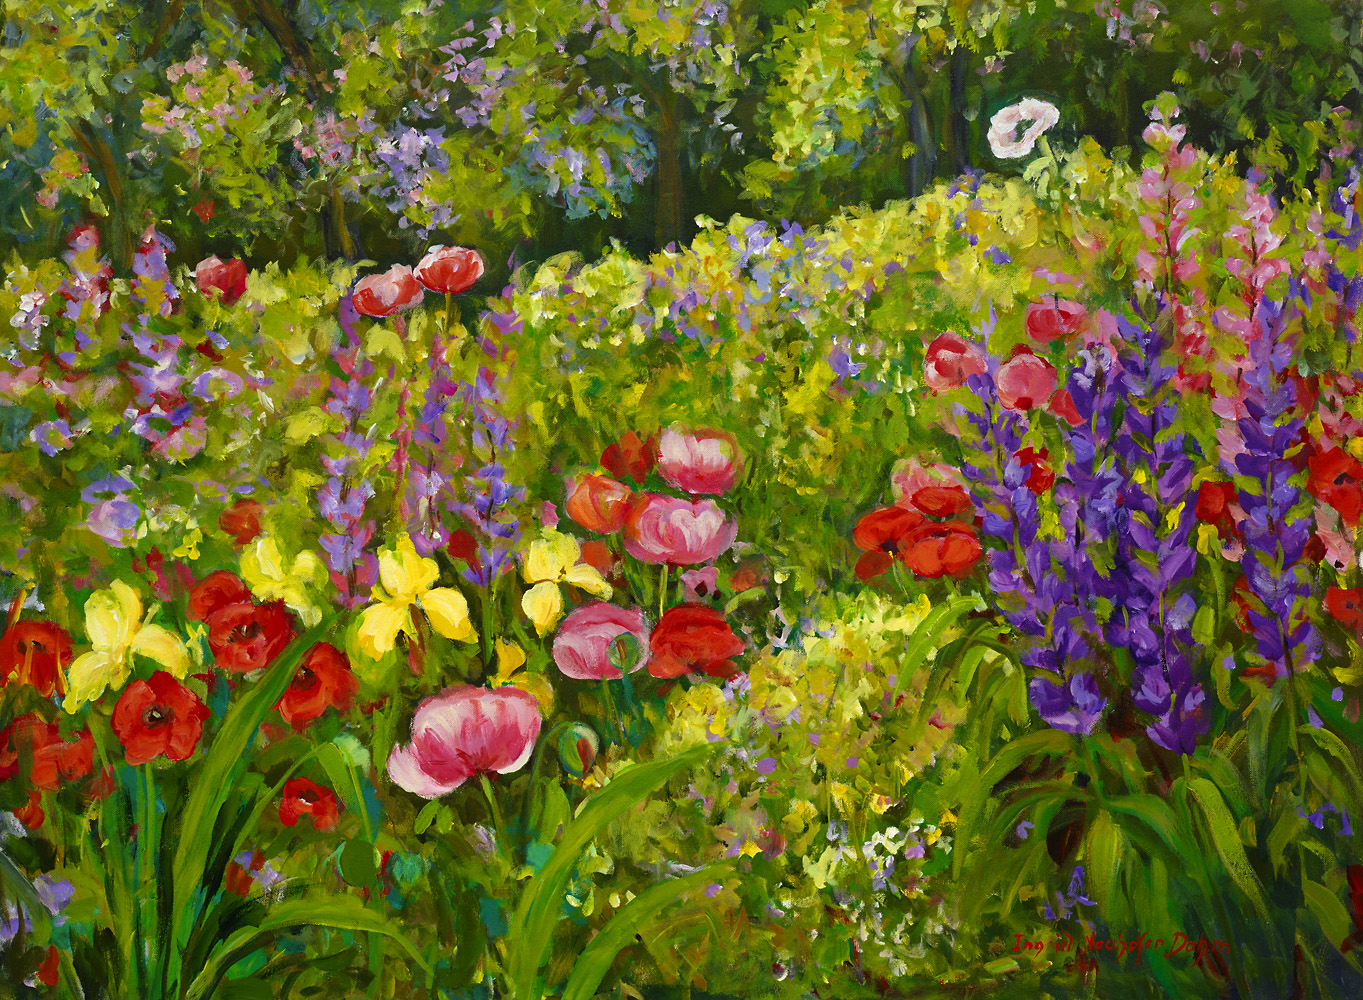 Field of Flowers 30 x 40.jpg